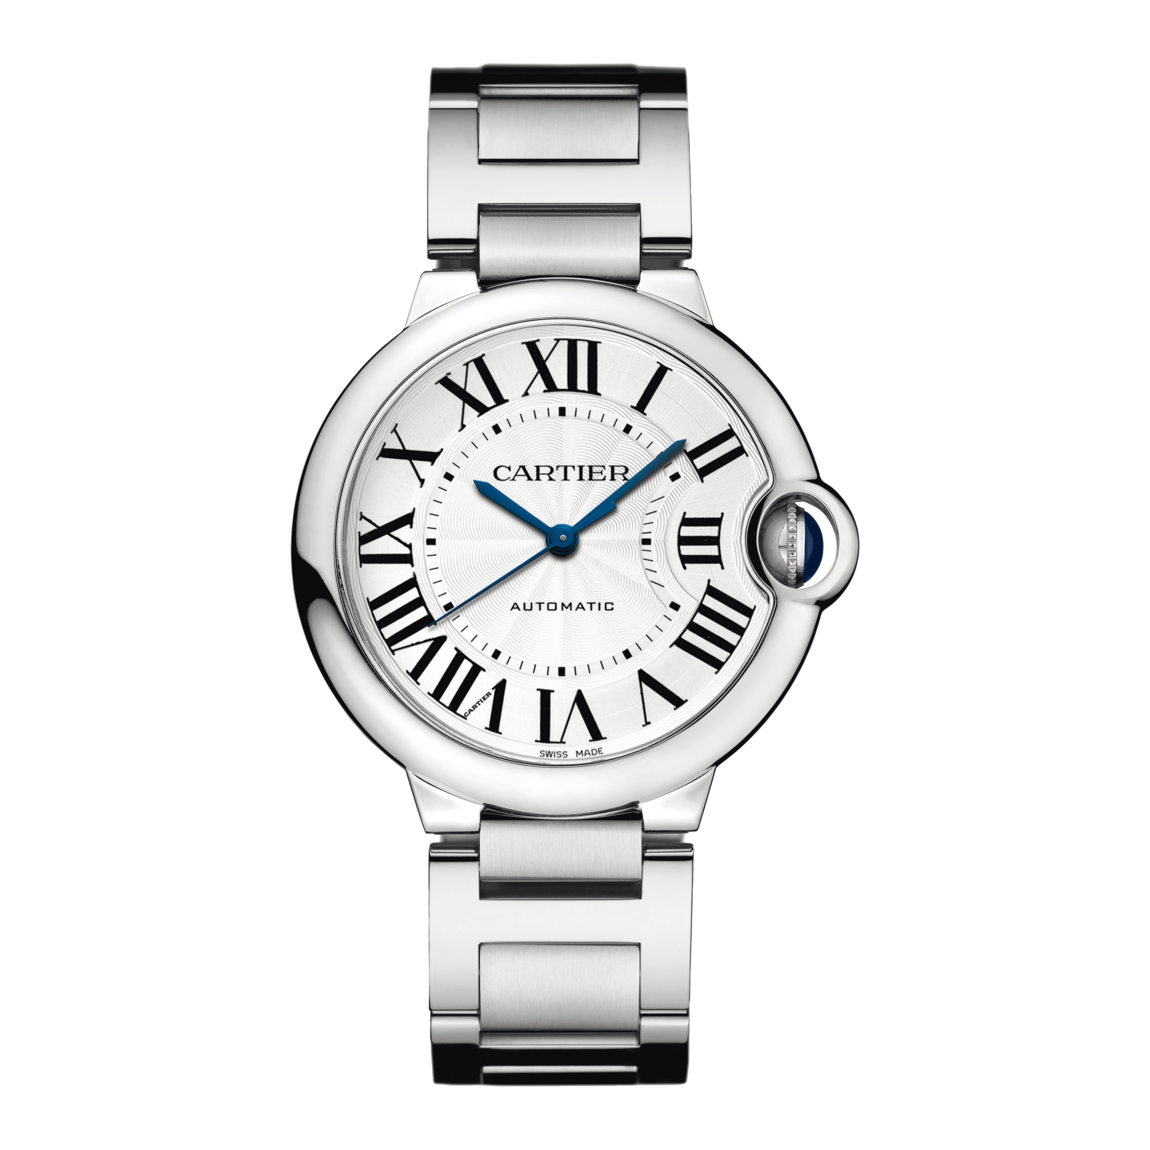 6792914ef6b3 Ballon Bleu de Cartier in Steel – 36mm – Ladies Watch – W6920046 Marshall  Pierce